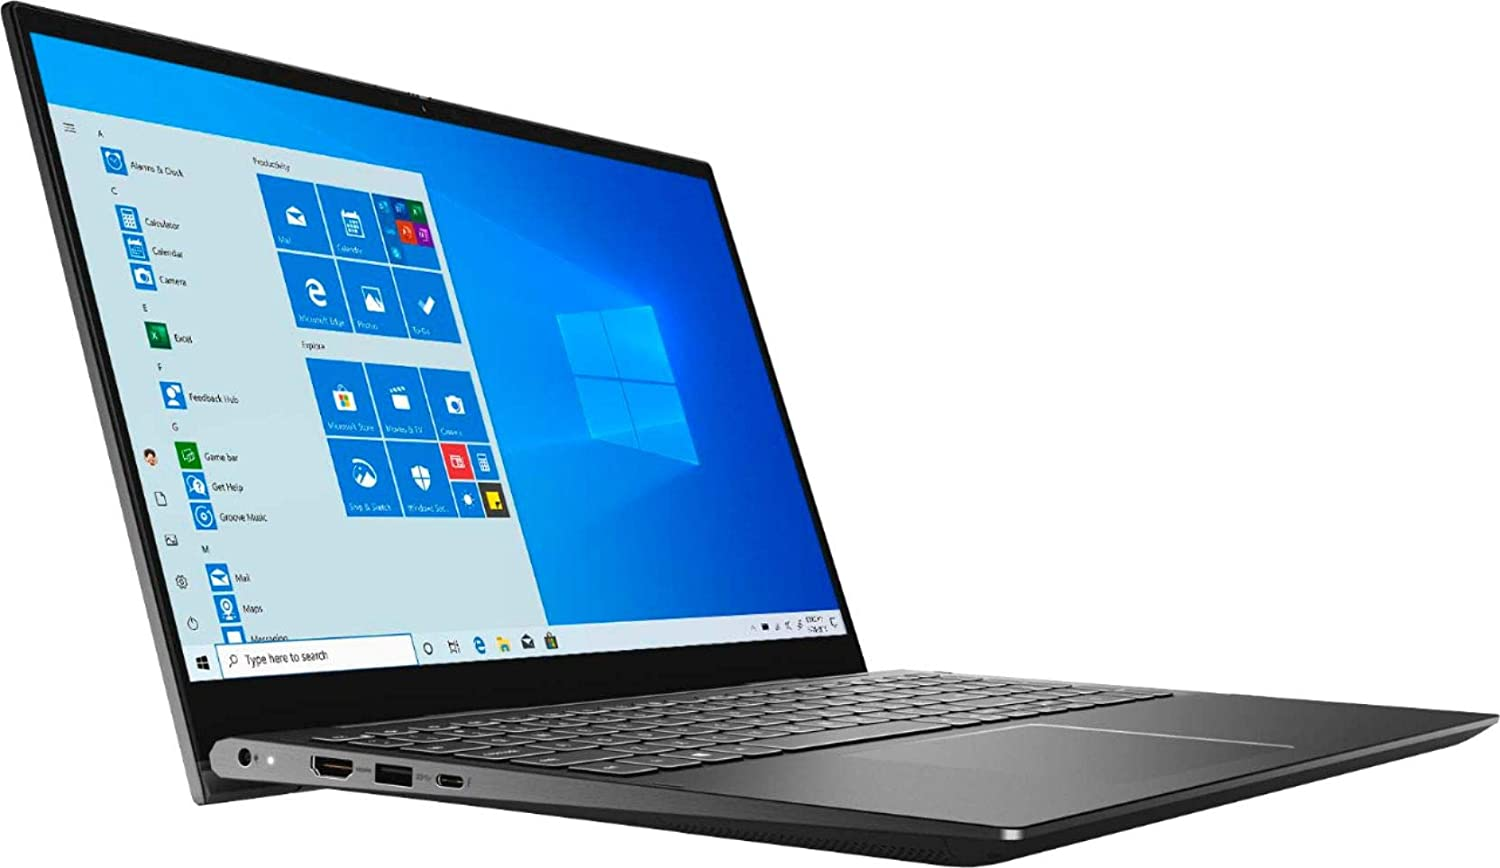 Dell Inspiron 7506-BLK Home and Business Laptop-2-in-1 (Intel i7-1165G7 4-Core, 16GB RAM, 1TB SSD, Intel Iris Xe MAX, 15.6